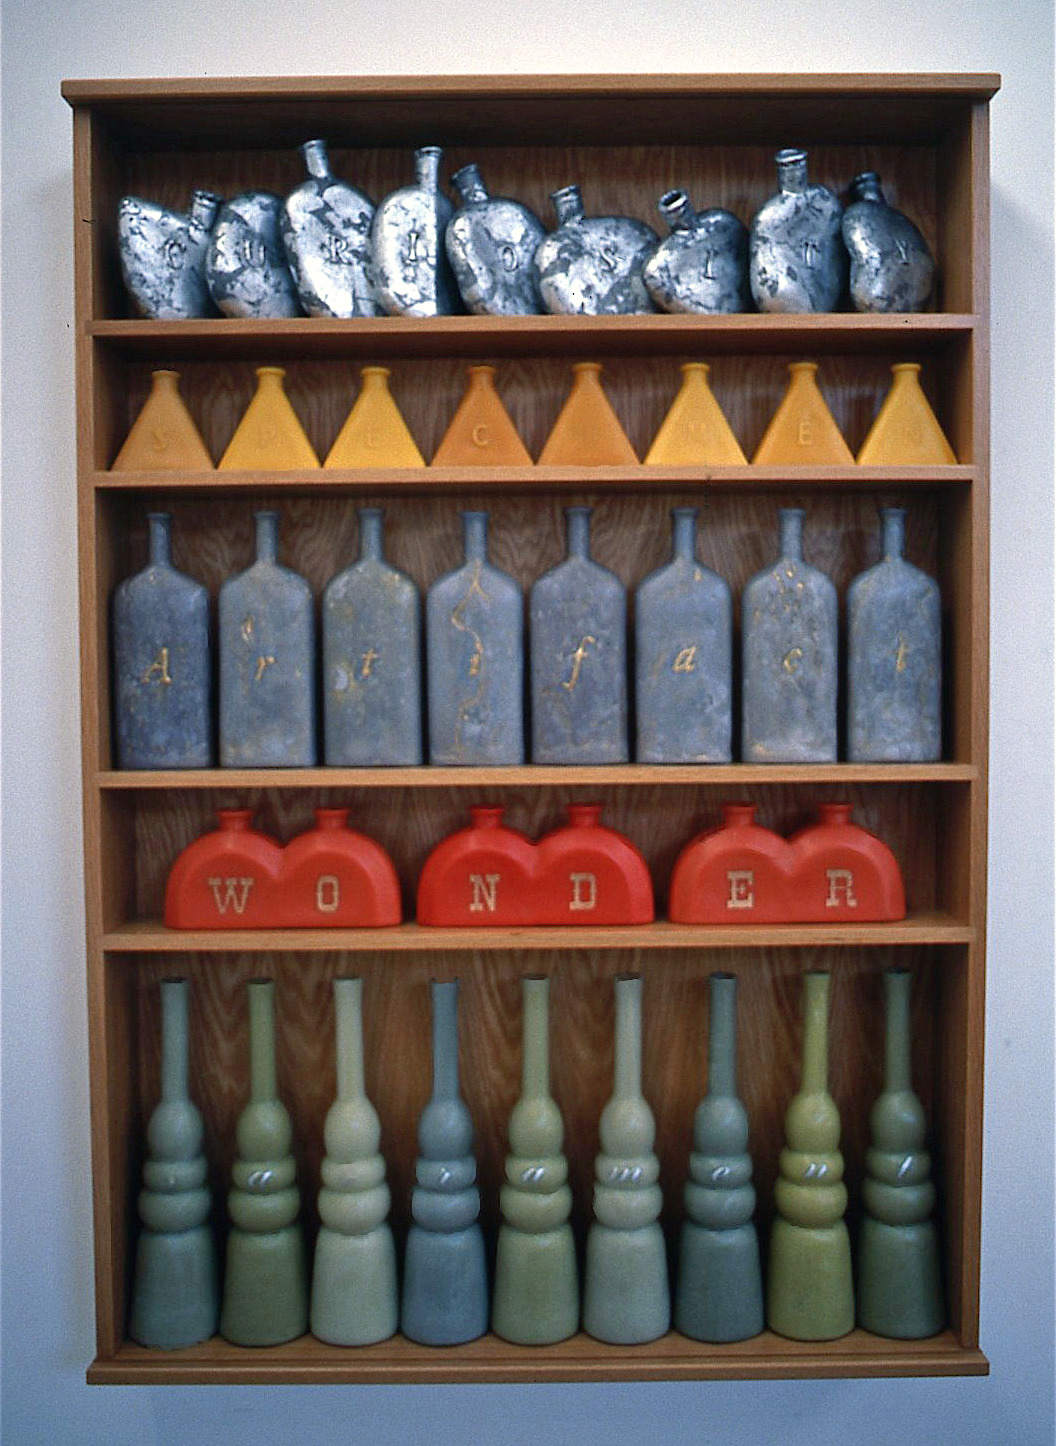 Museum,  1998: wax, applied metal leaf, wood; 44 1/2 x 31 x 5 1/2 inches. From top to bottom, the rows of vessels read: curiosity, specimen, artifact, wonder, sacrament.